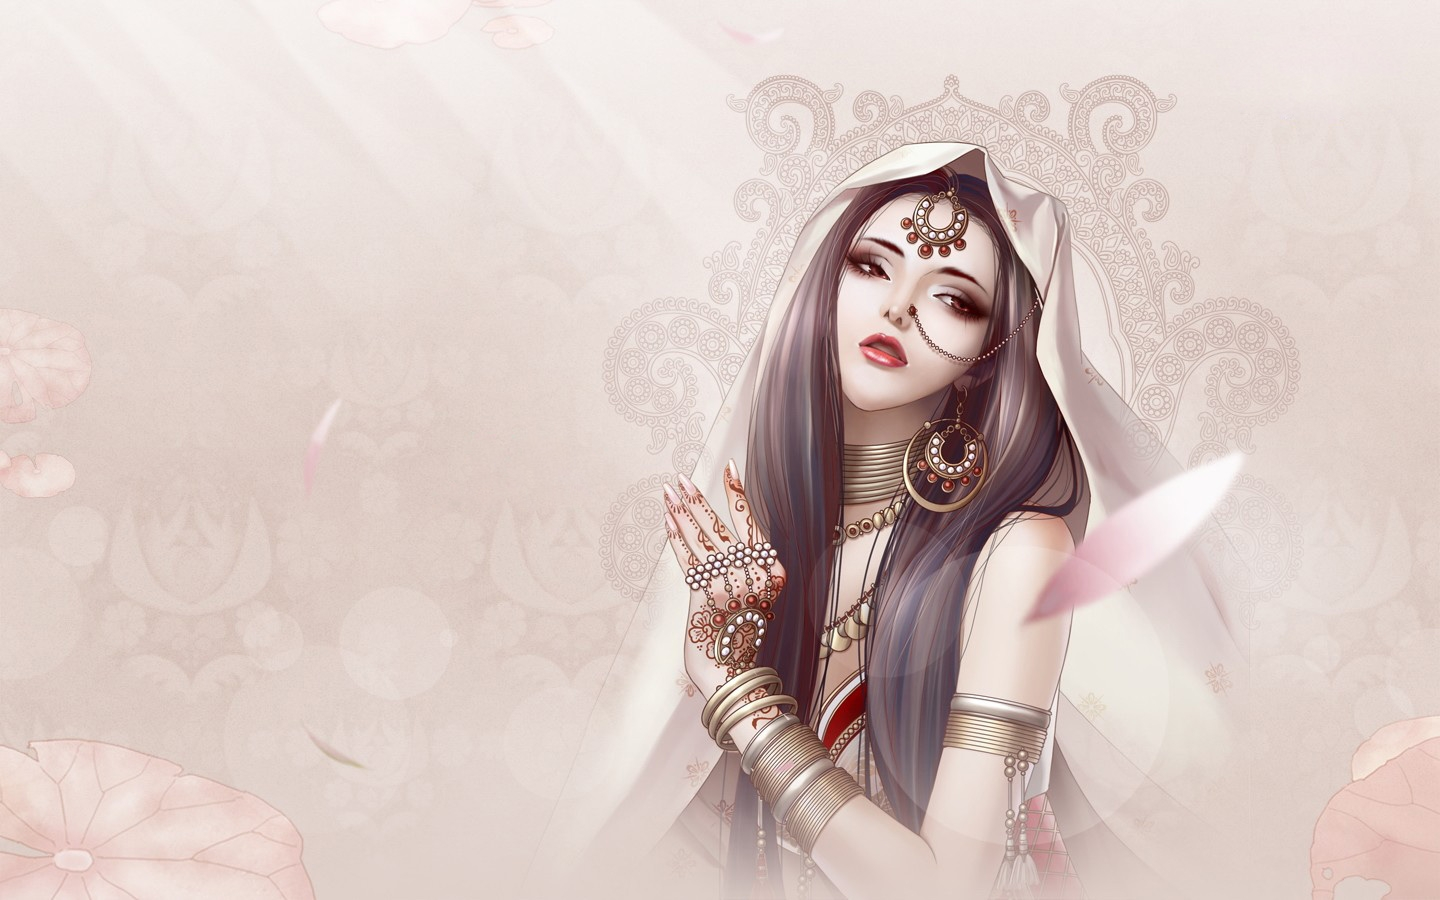 Artistic Girl Wallpapers Group (80+)